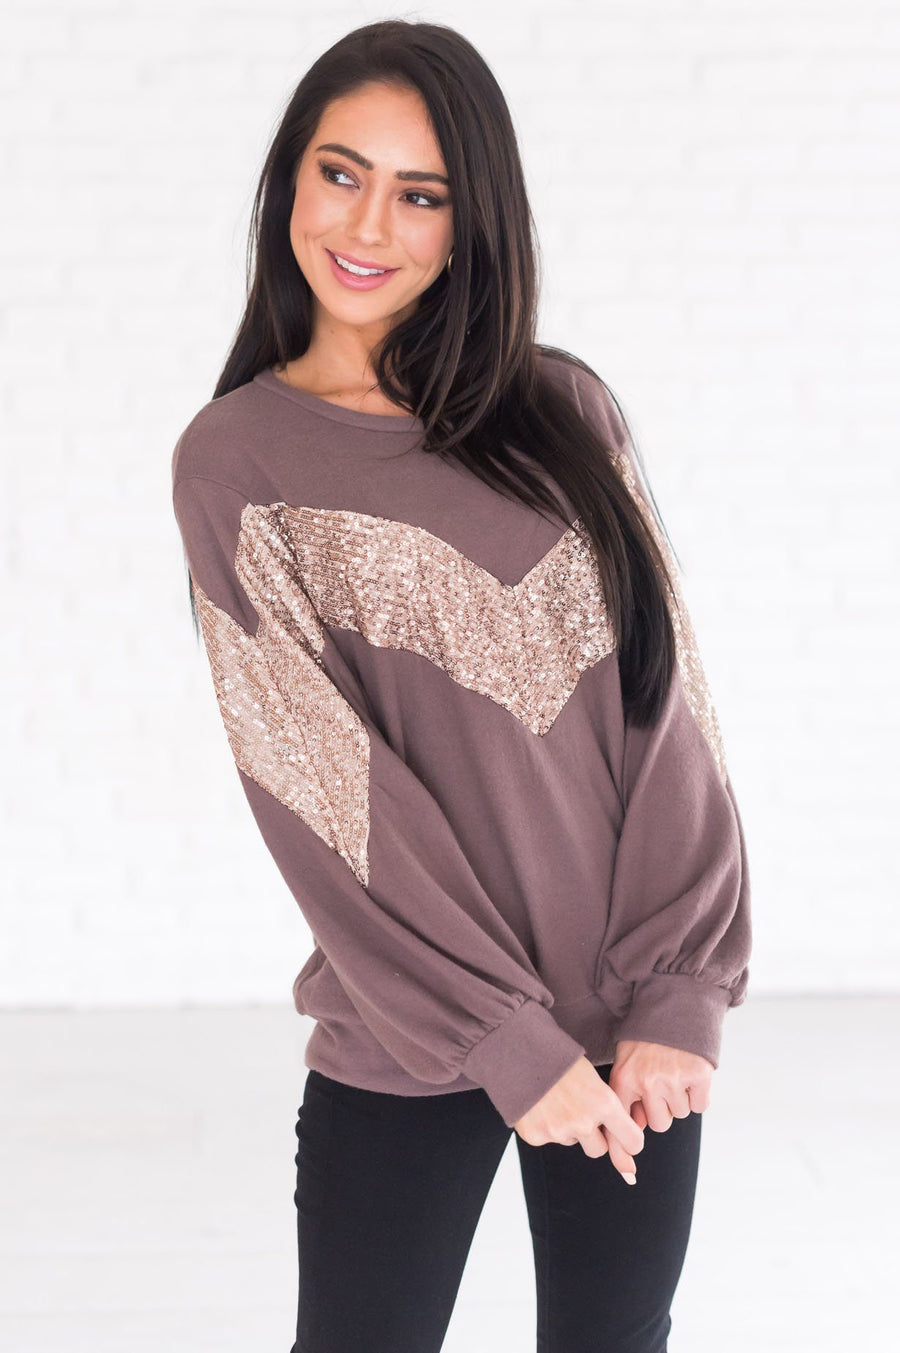 Filled With Joy Modest Fleece Top